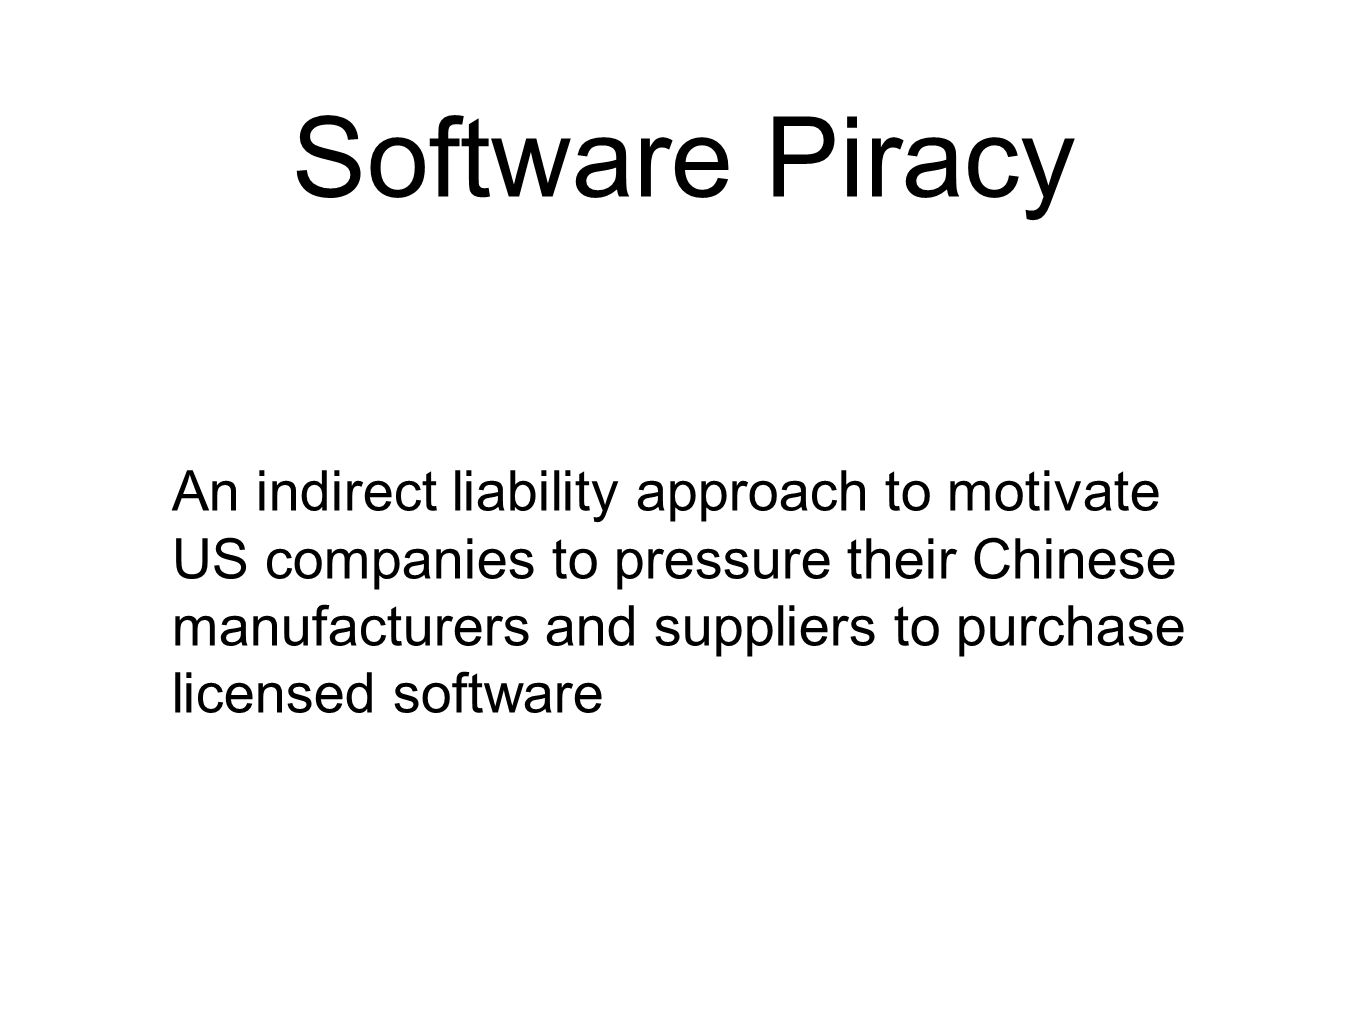 Software Piracy An indirect liability approach to motivate US companies to pressure their Chinese manufacturers and suppliers to purchase licensed sof